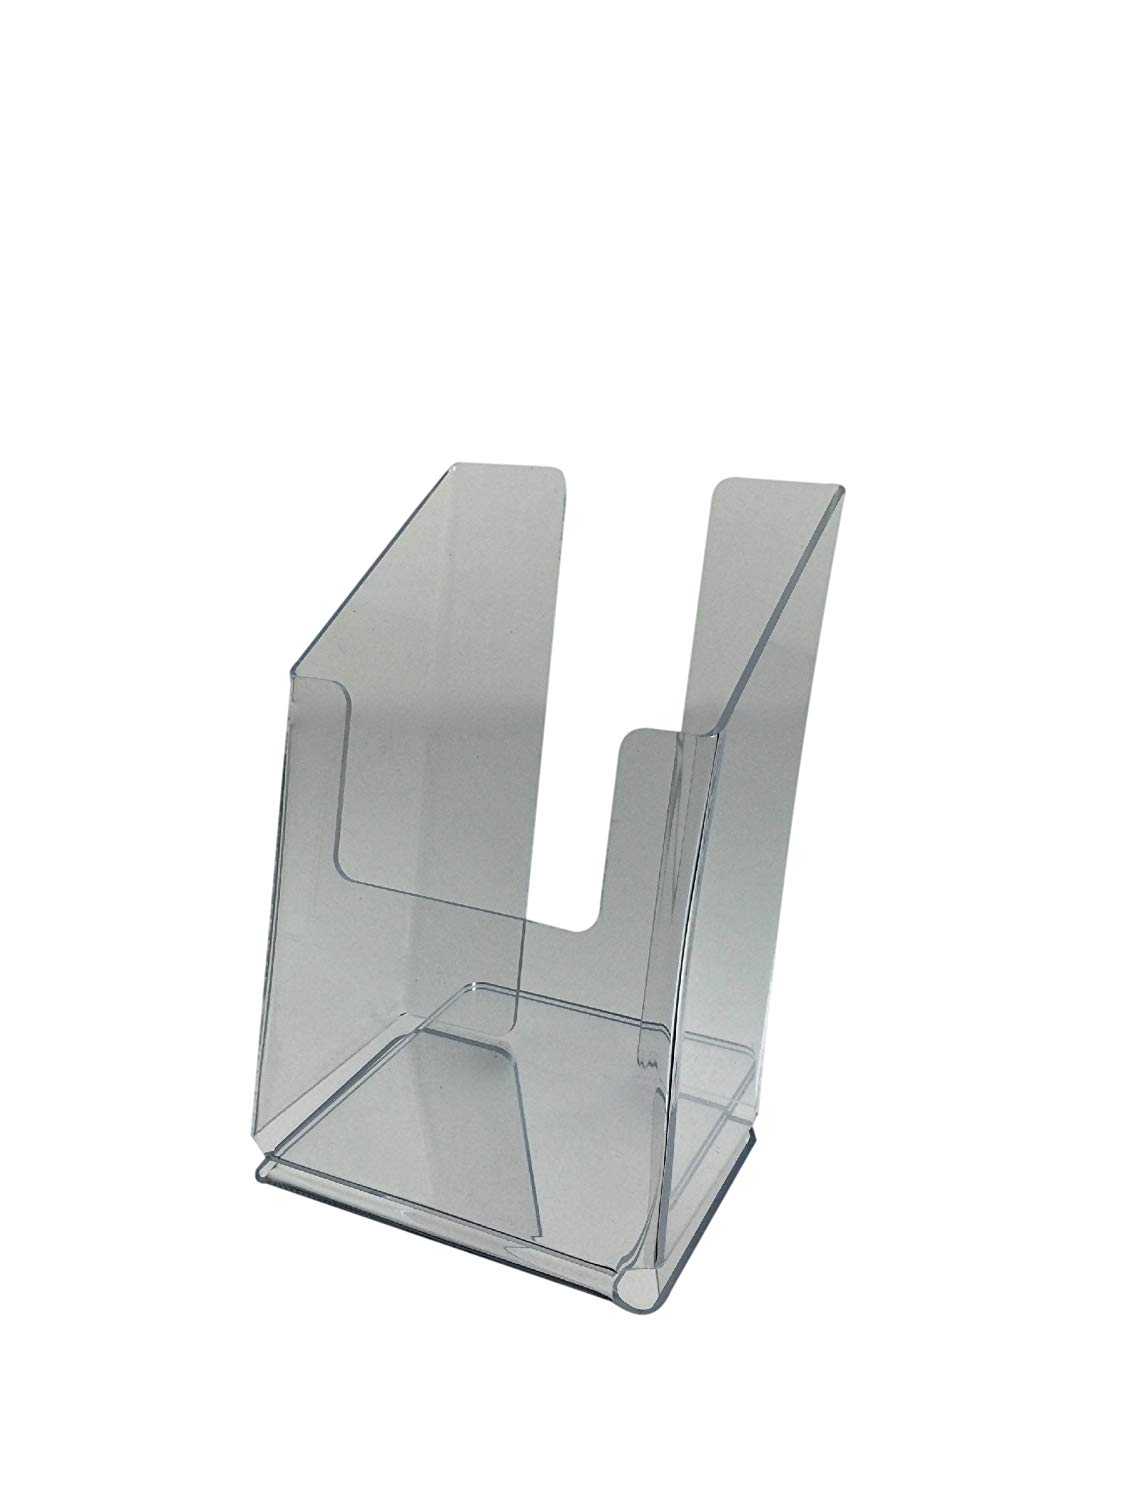 Brochure Holder for 4 X 9 Tri-fold Literature, Clear Acrylic, Single Pocket, Slant Back Free Standing Design - Sold in Lots of 10